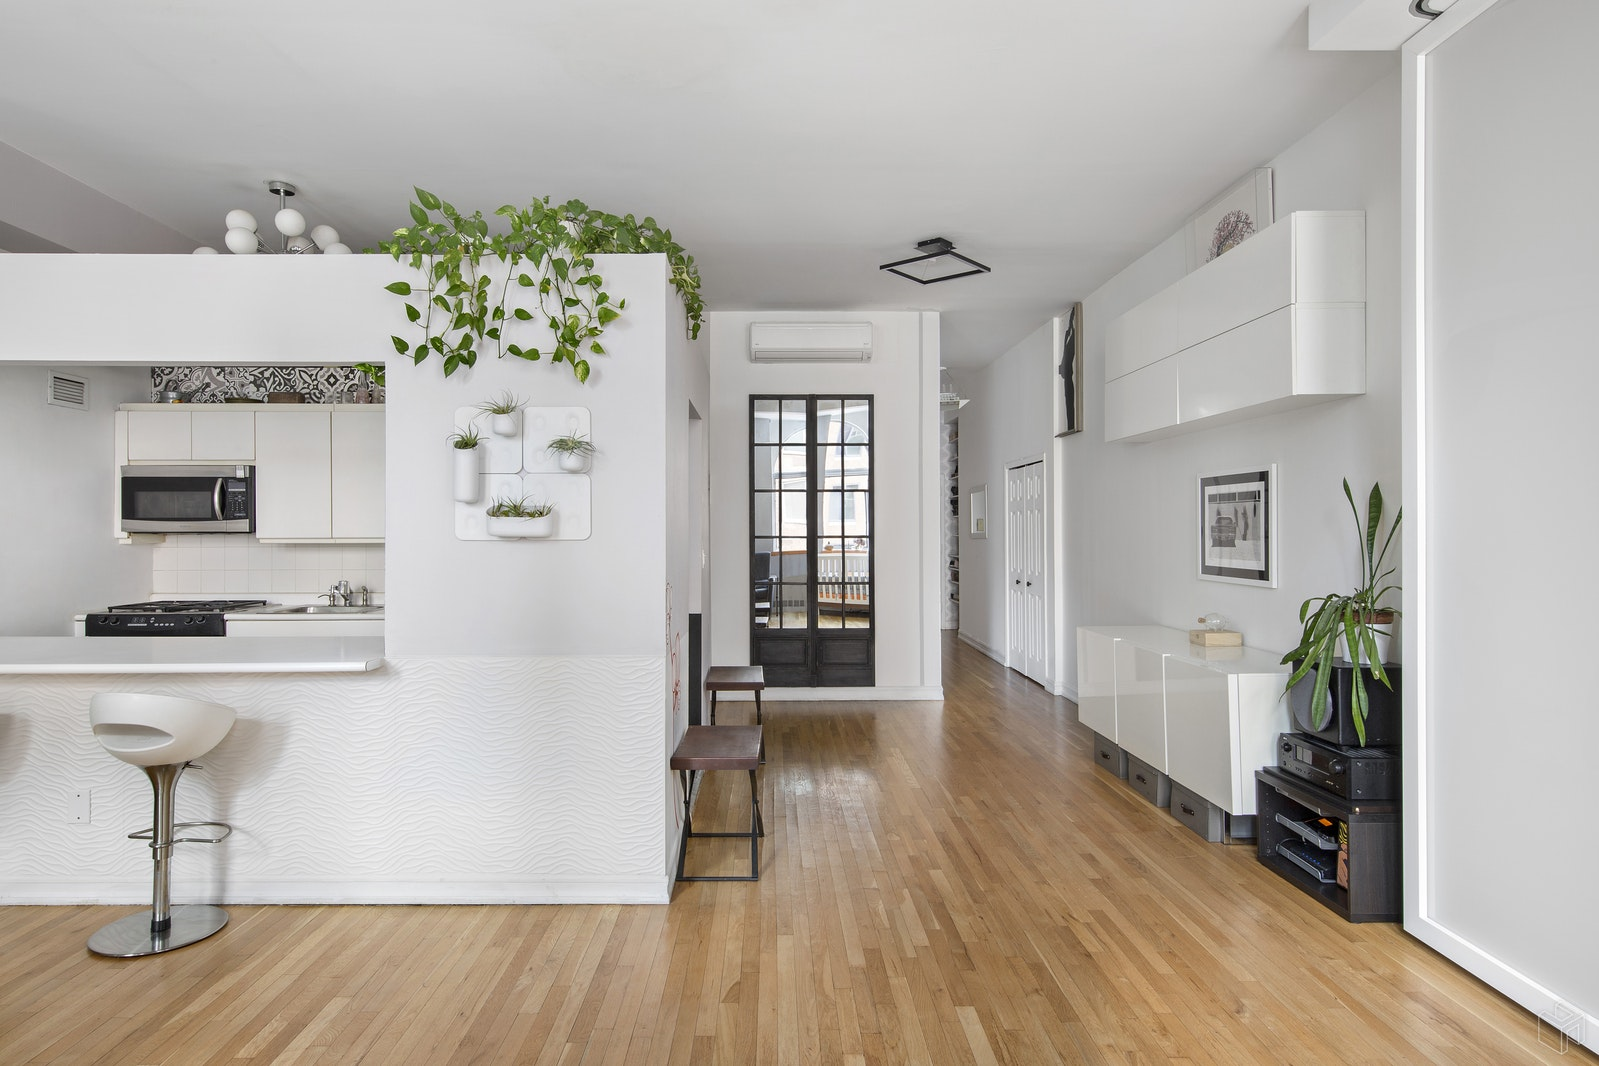 125 EAST 12TH STREET 4H, East Village, $1,250,000, Web #: 18932003